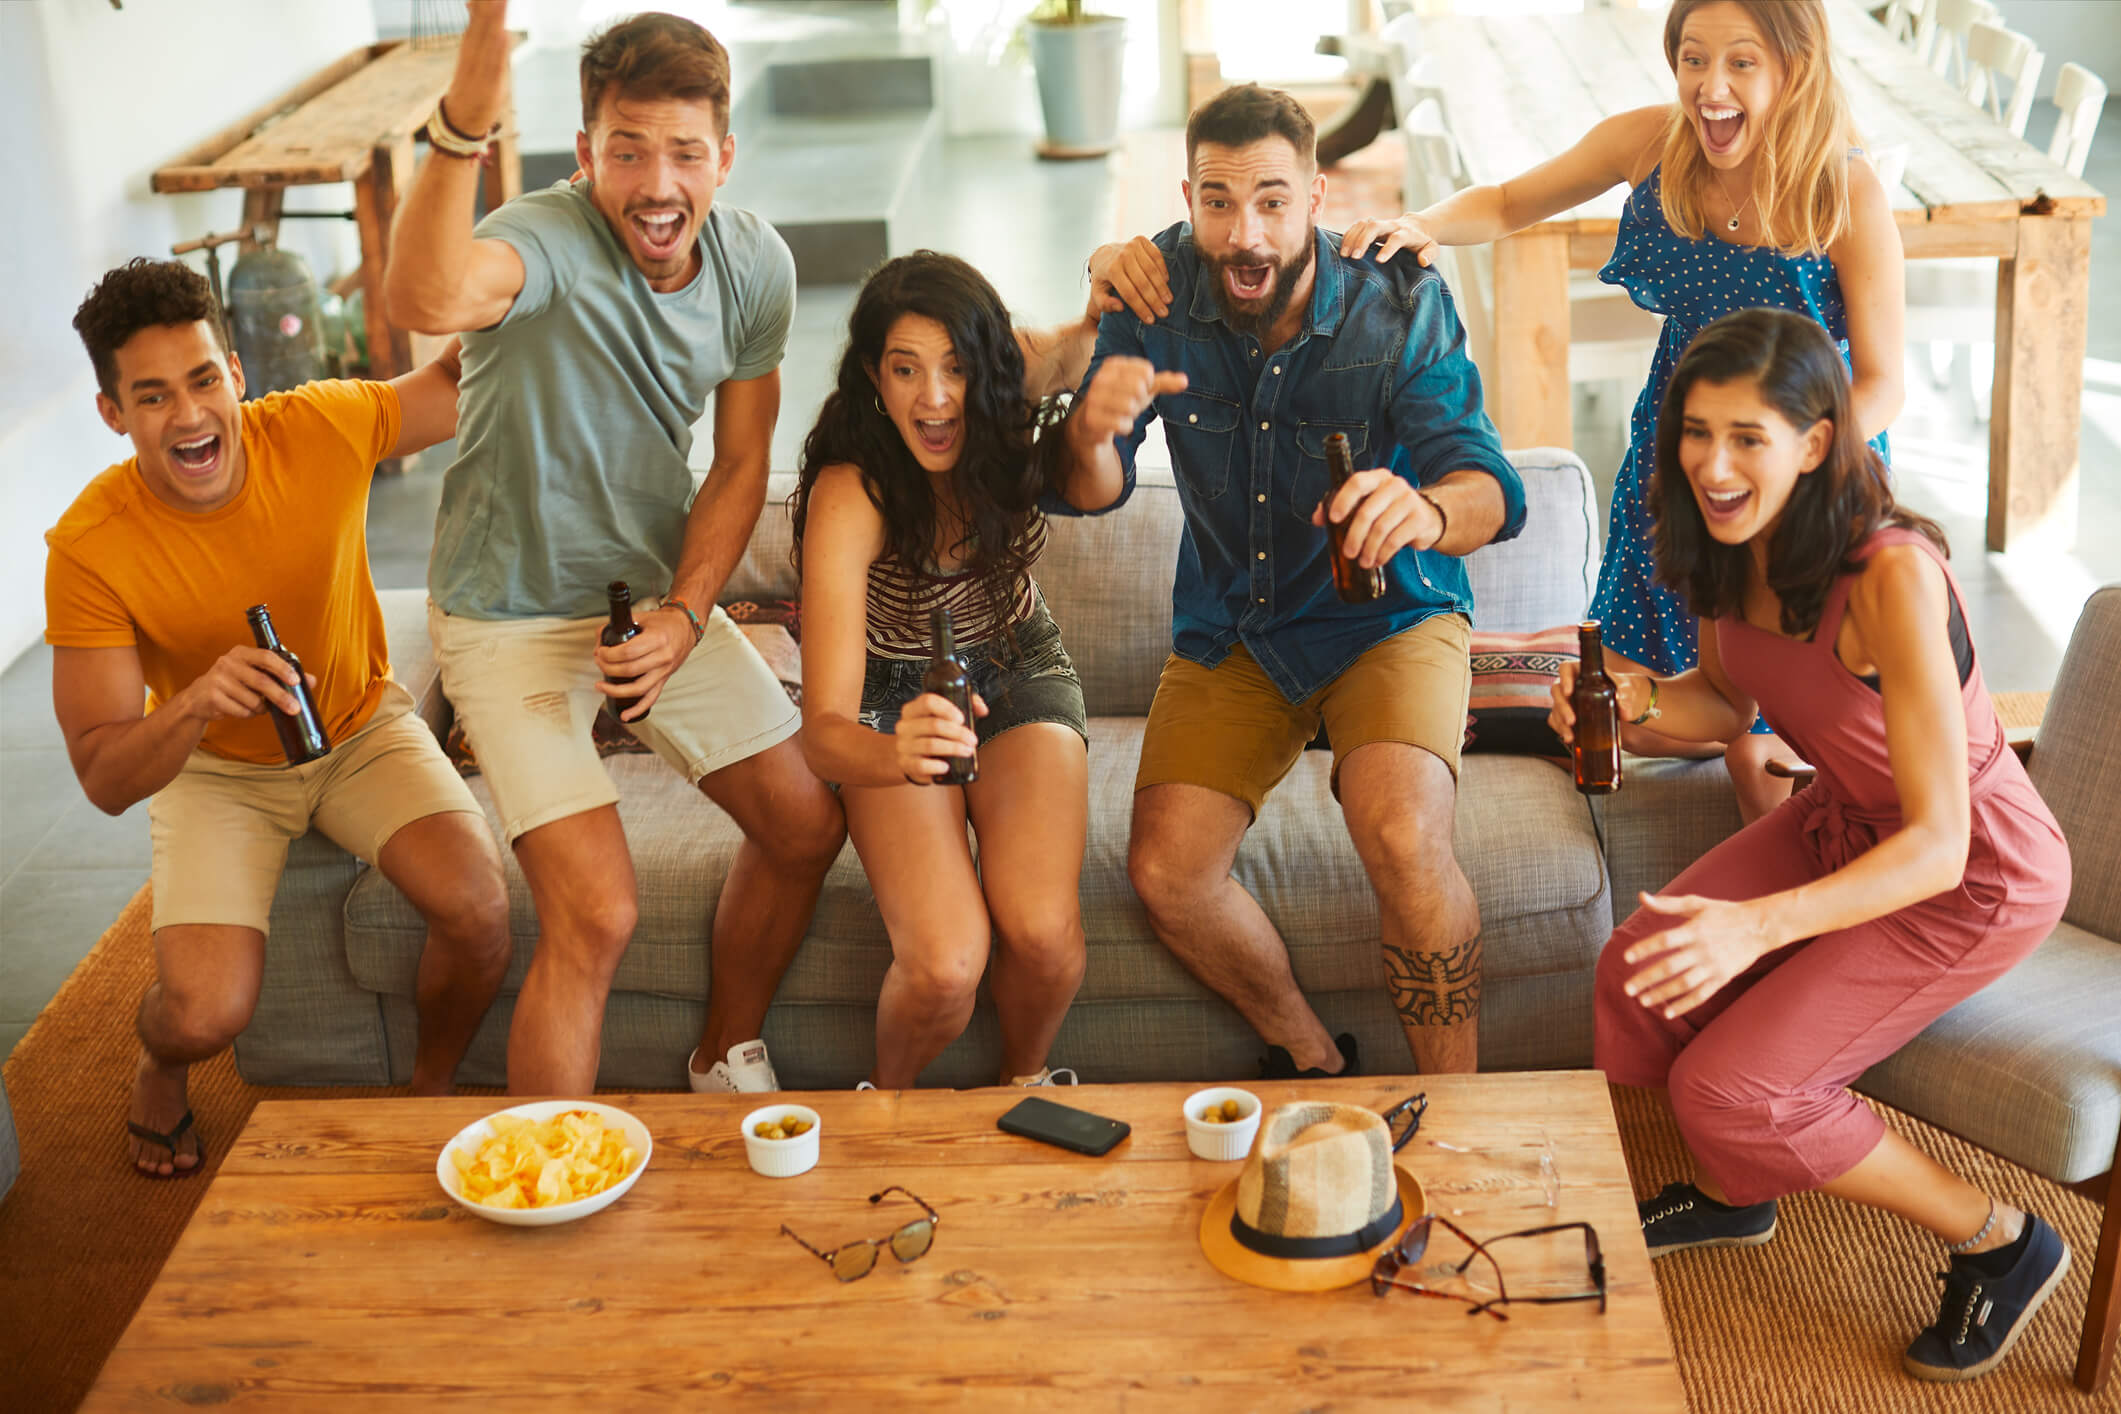 Friends getting excited while watching sports on TV in living room